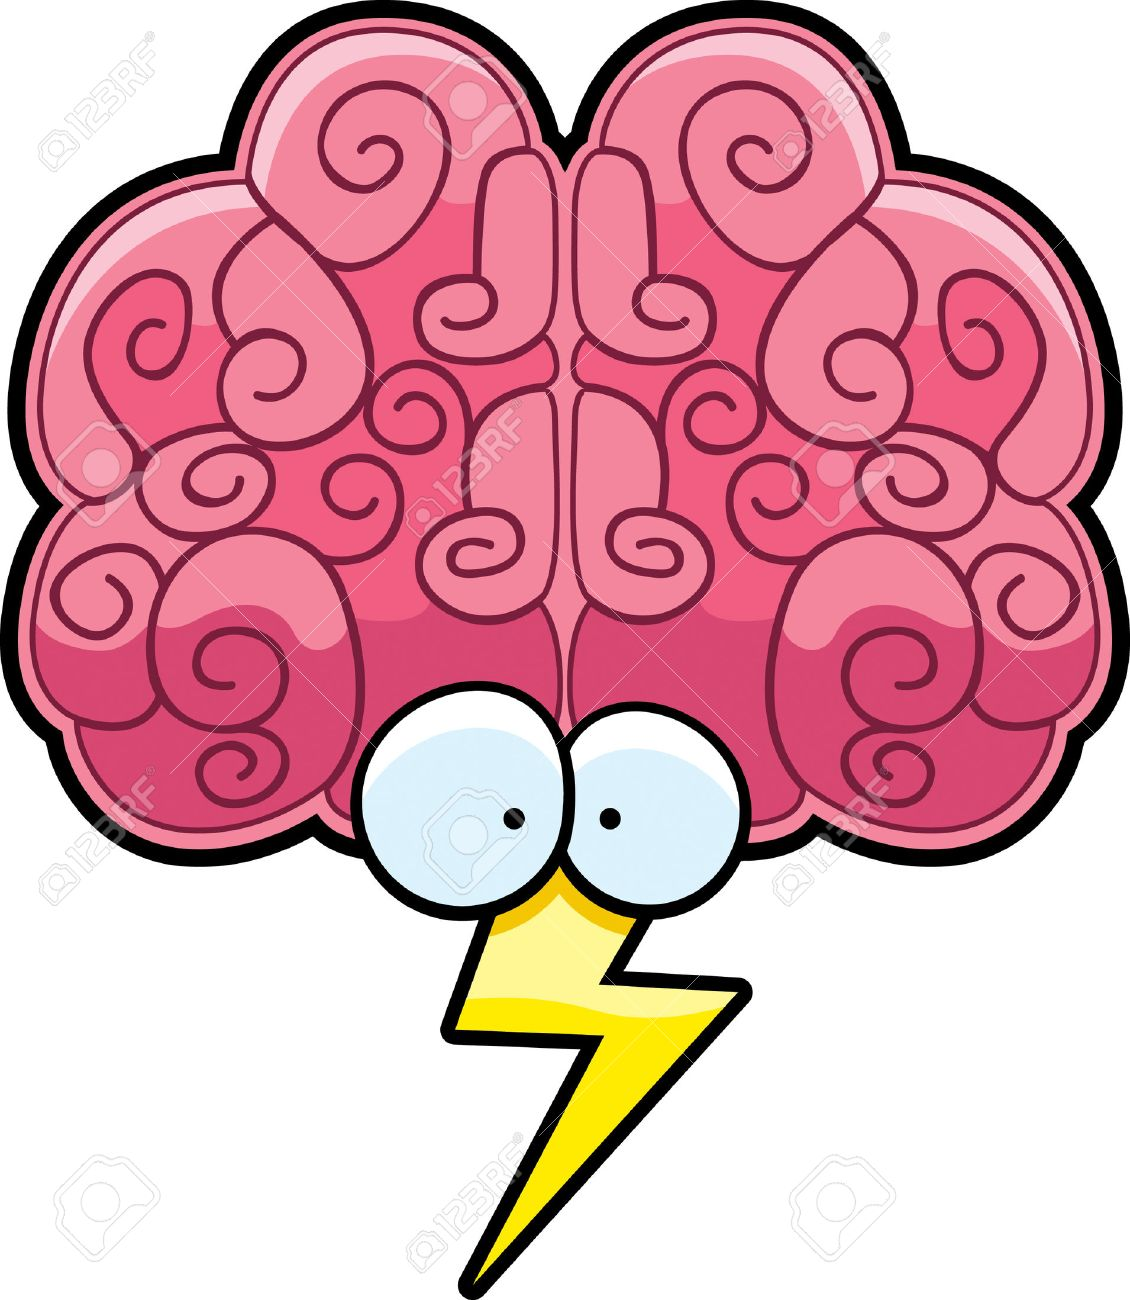 Cartoon Picture Of A Brain